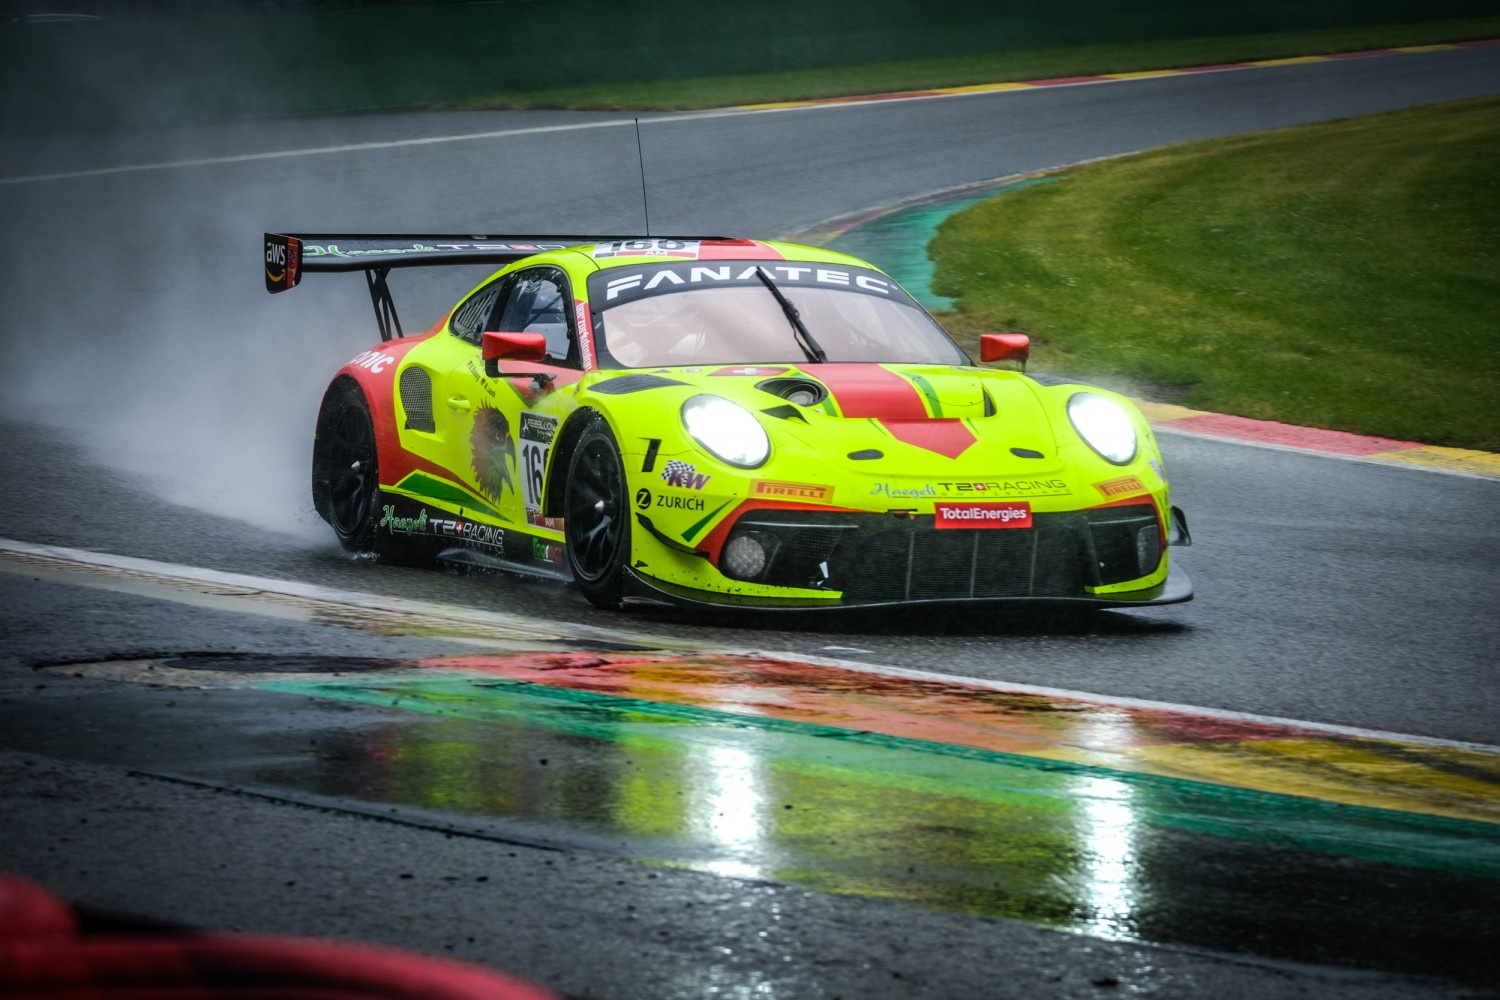 Hägeli by T2 Racing Porsche on top as Bronze Test launches 2021 TotalEnergies 24 Hours of Spa